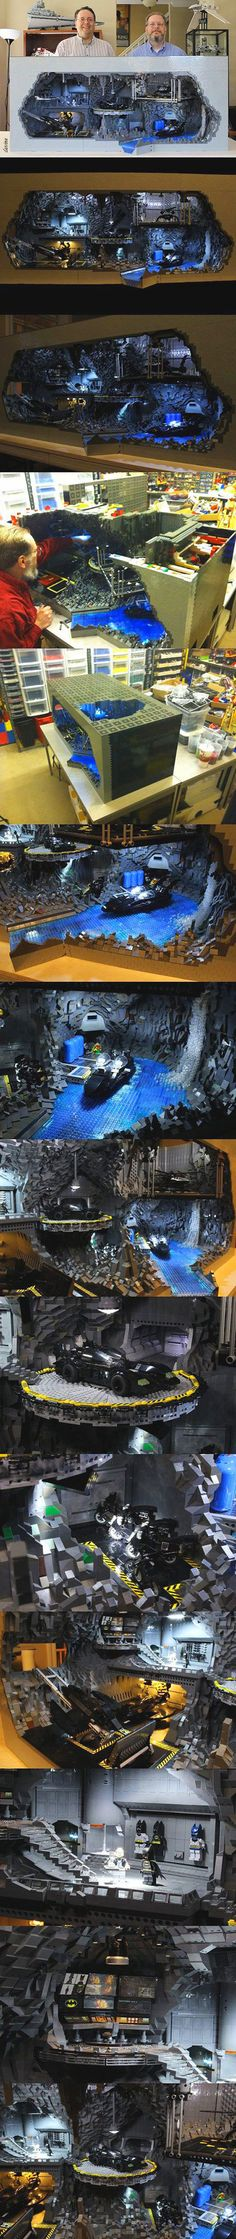 This LEGO master recreated Batmans Batcave with 20,000 bricks.